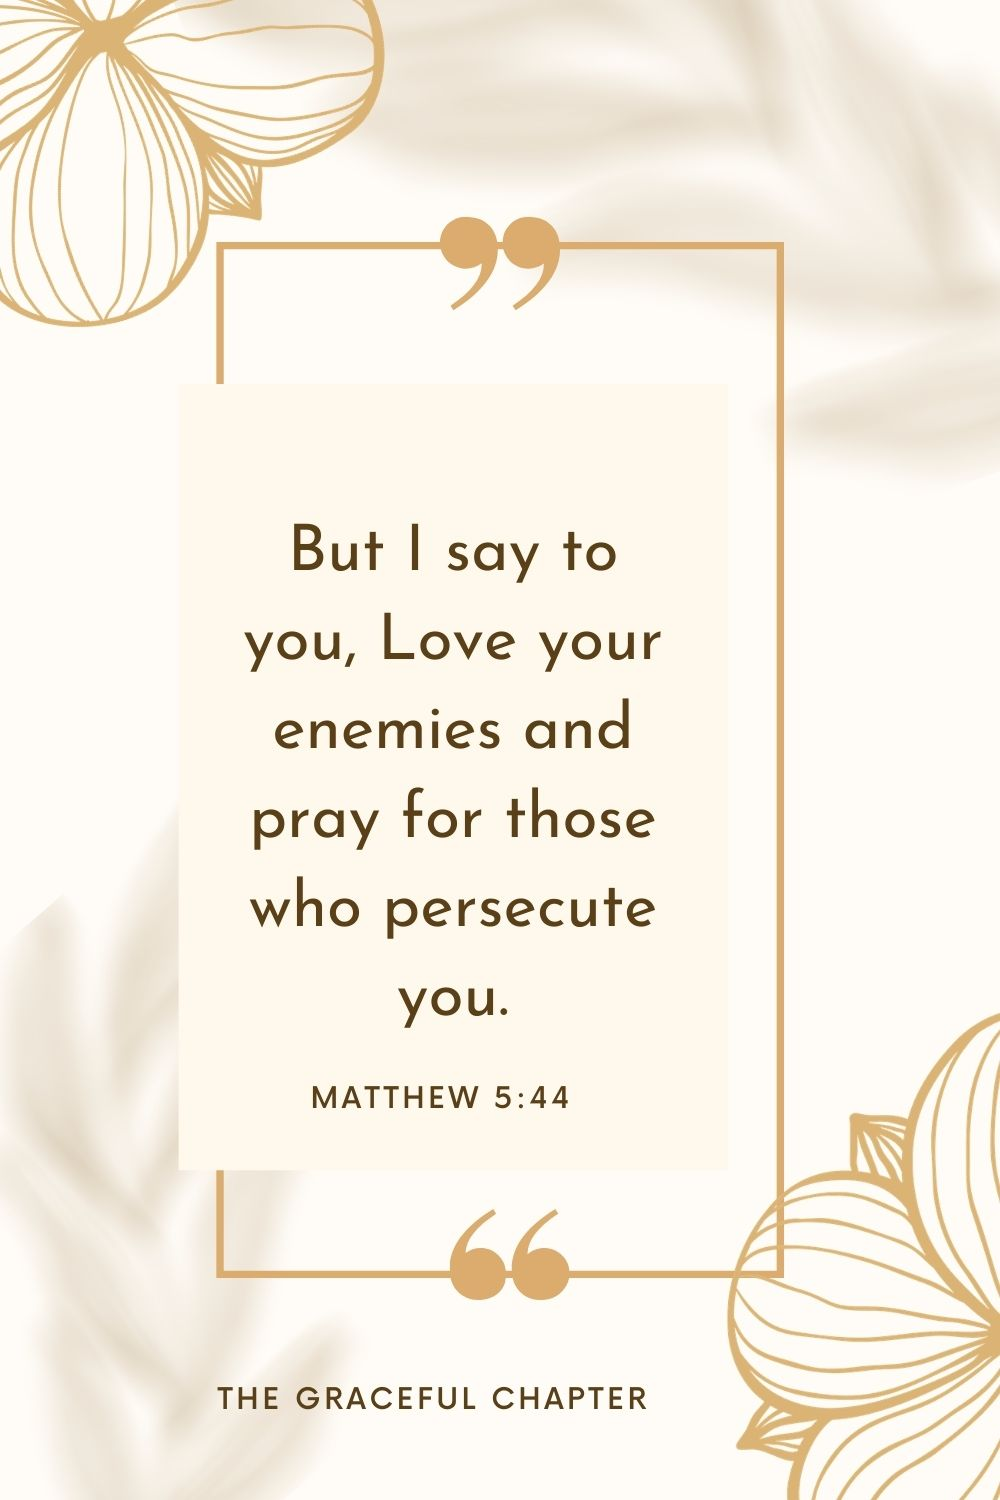 But I say to you, Love your enemies and pray for those who persecute you. Matthew 5:44